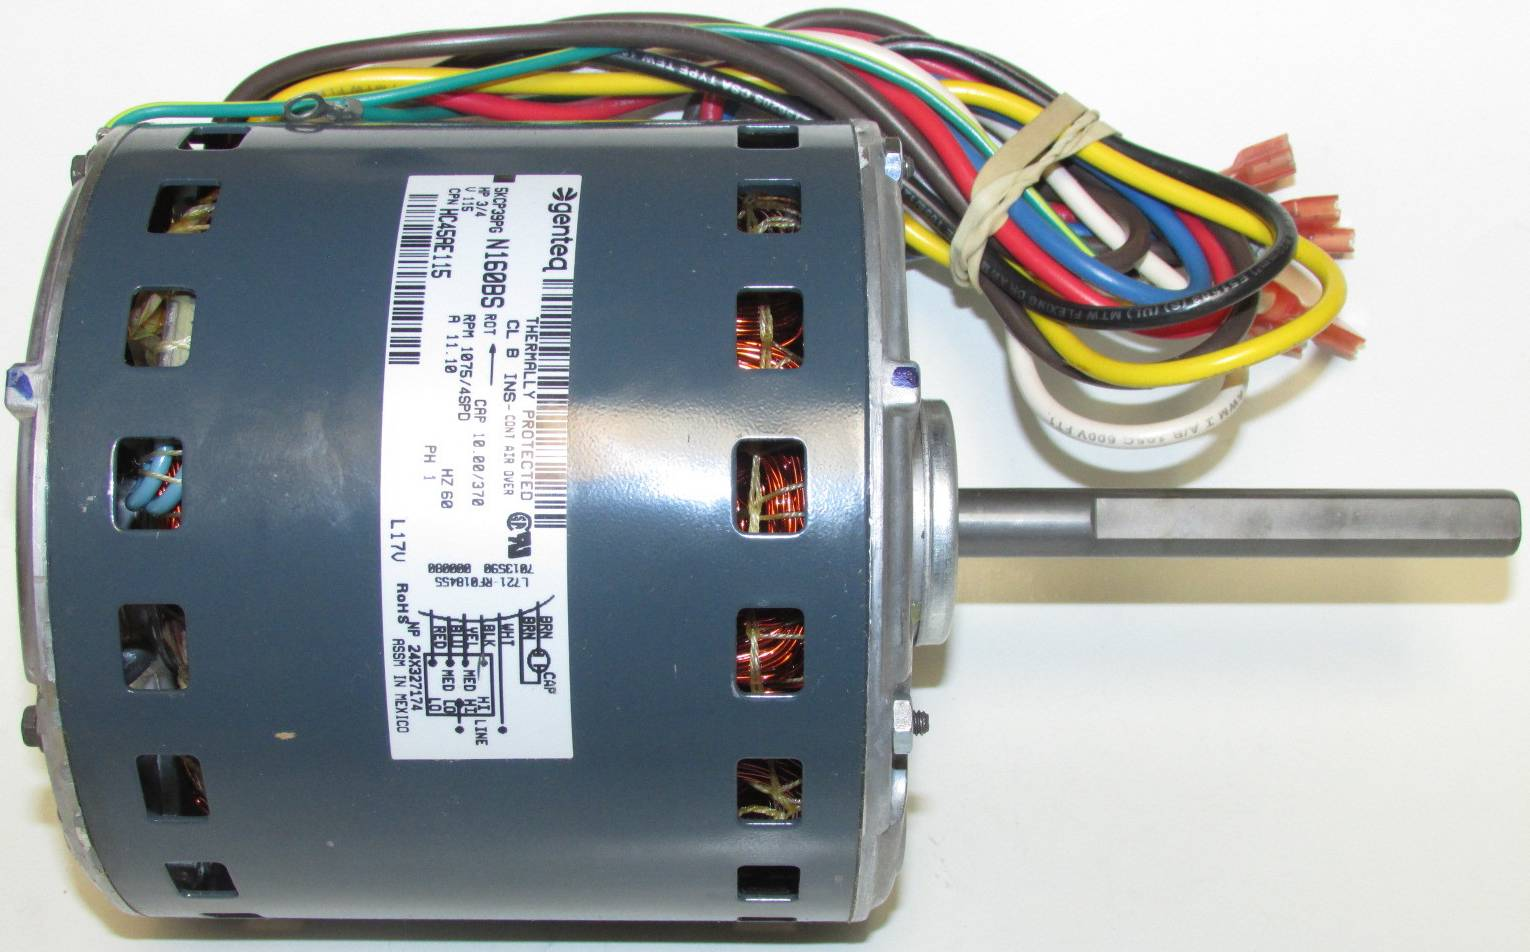 HC45AE115 Bryant Carrier Furnace Blower Motor • Arnold's Service Company,  Inc.Arnold's Service